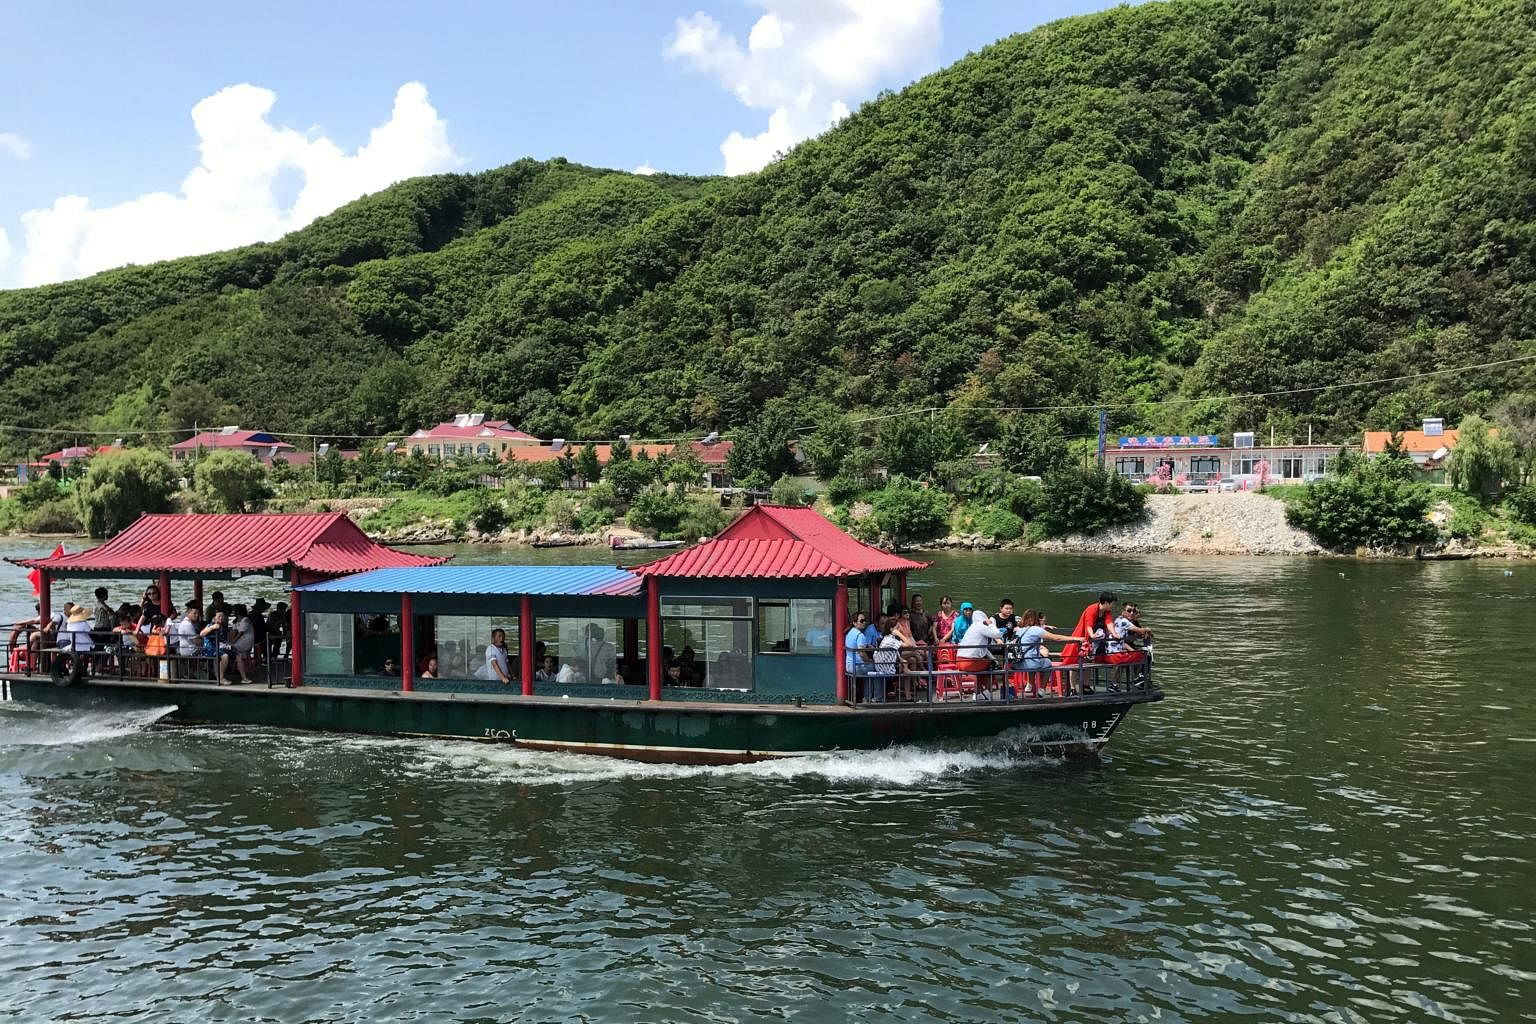 Chinese tourists are seen on a boat taking them from the Chinese side of the Yalu River for sightseeing close to the shores of North Korea